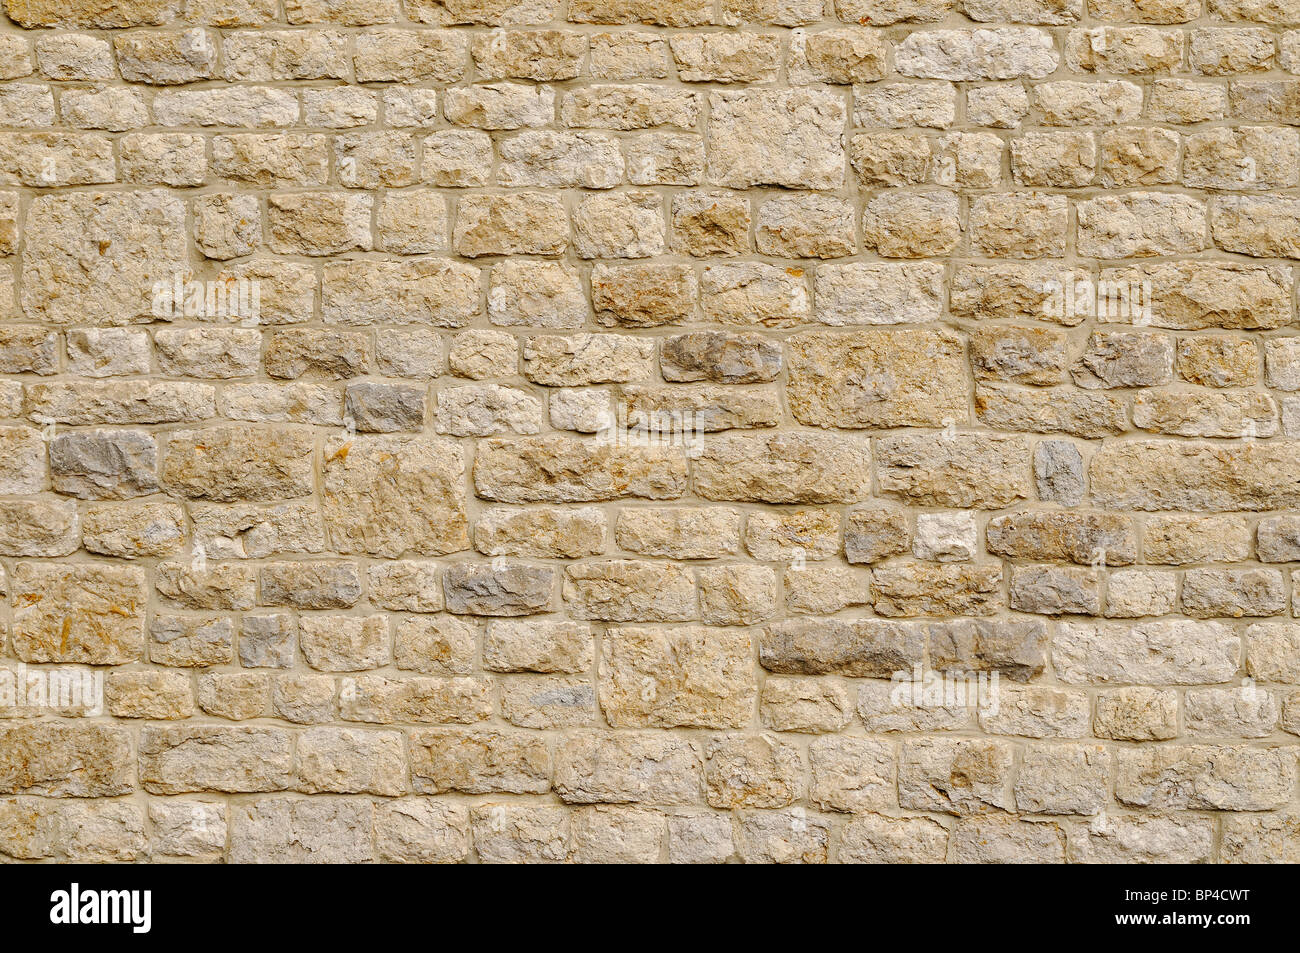 Stone Wall, Close Up. - Stock Image